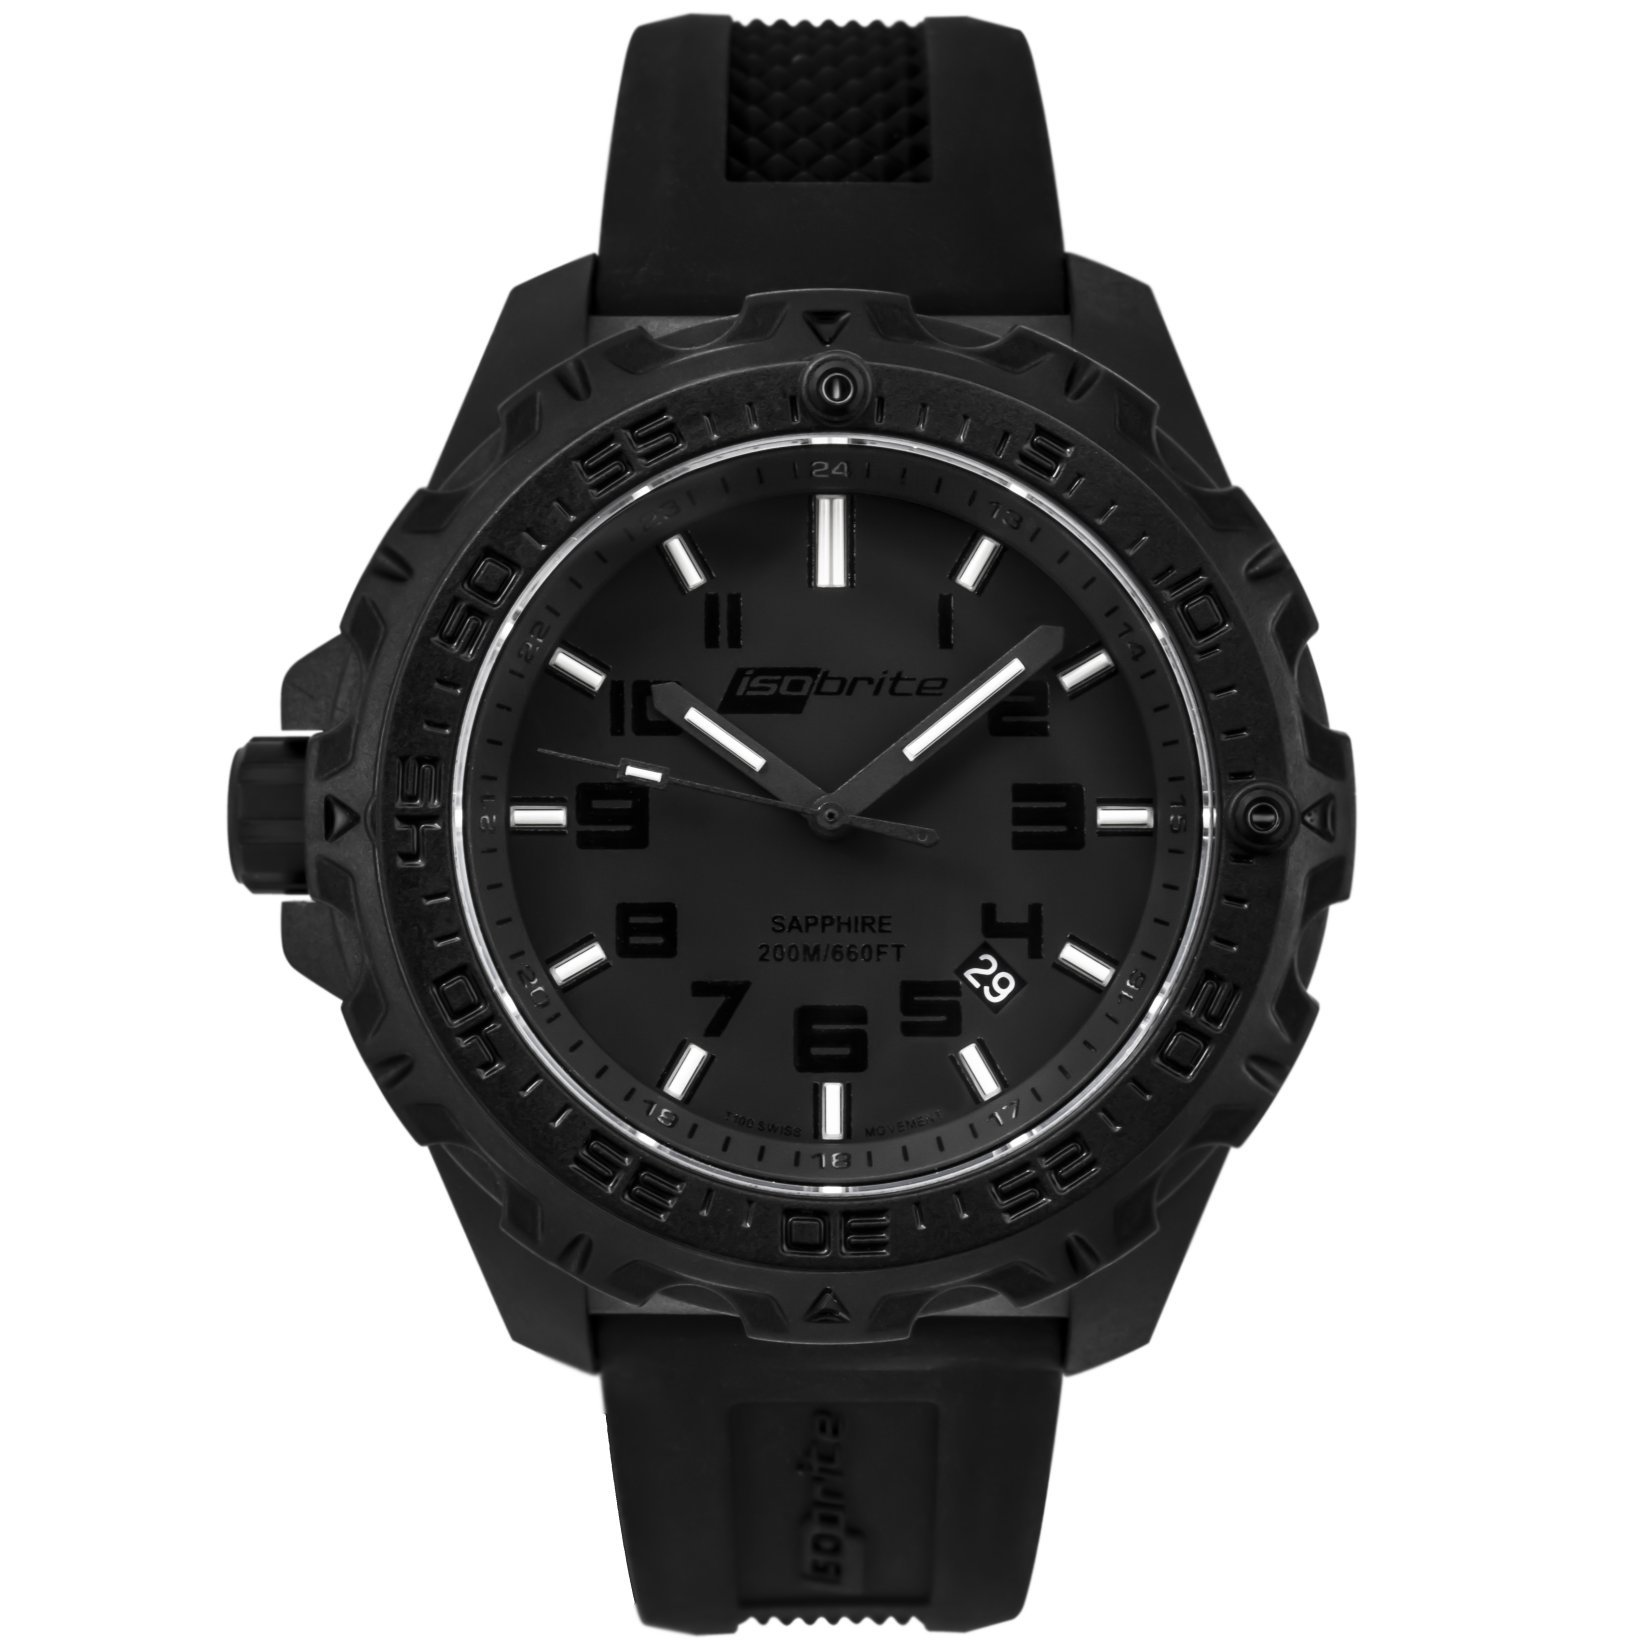 ArmourLite IsoBrite Eclipse T100 Tritium Illuminated Lightweight Polycarbon Watch 2 small All New Isobrite Eclipse T100 Tritium Illuminated Lightweight Polycarbon Tactical Watch Expands ArmourLites Commitment to Making the Brightest and Most Durable Watches